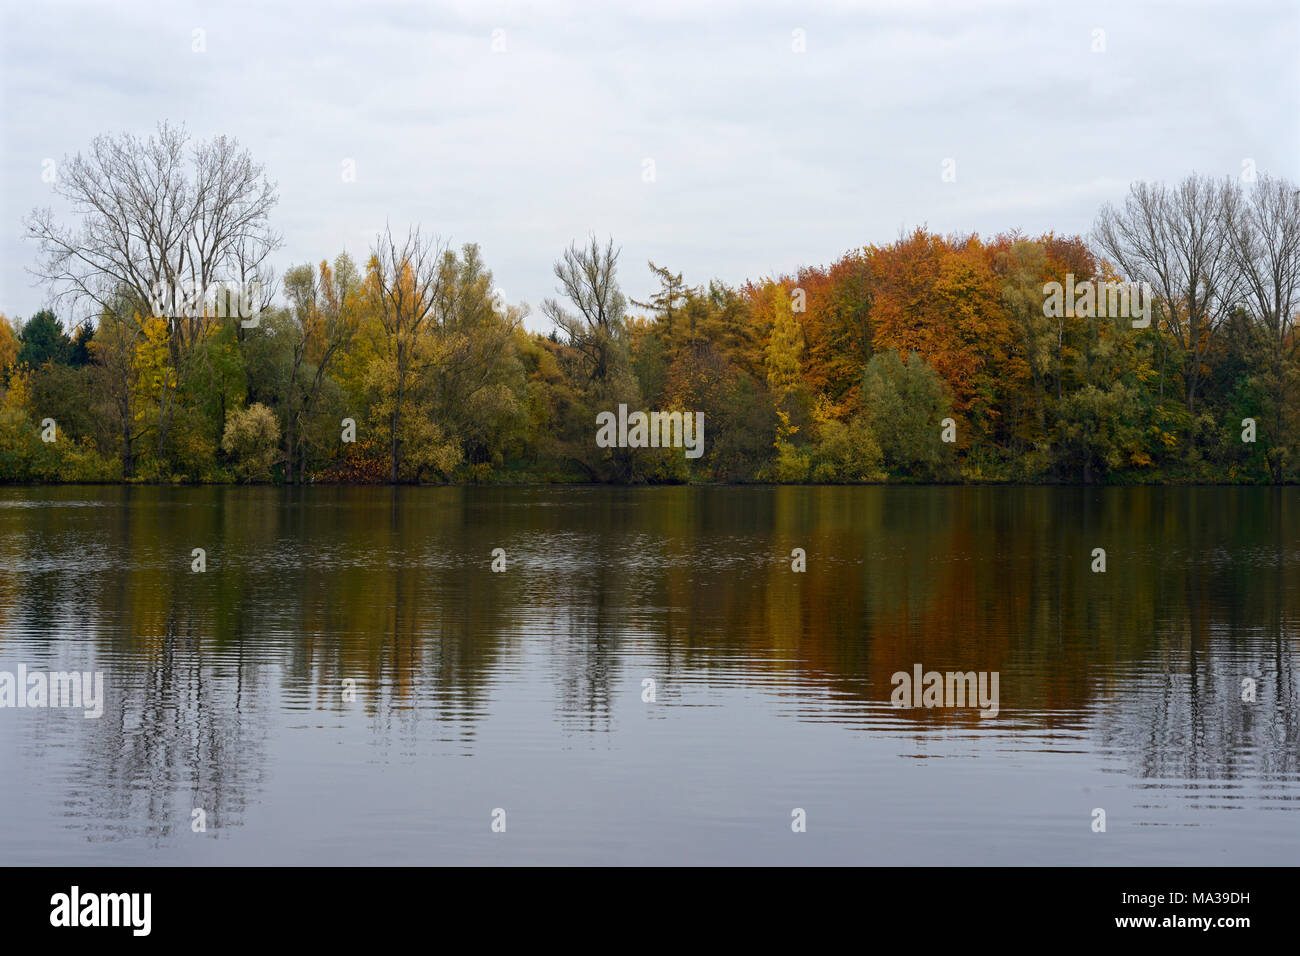 Bislicher Insel / Bislicher Island, Lower Rhine area, North-Rhine Westfalia, Germany, backwater in autumn. - Stock Image